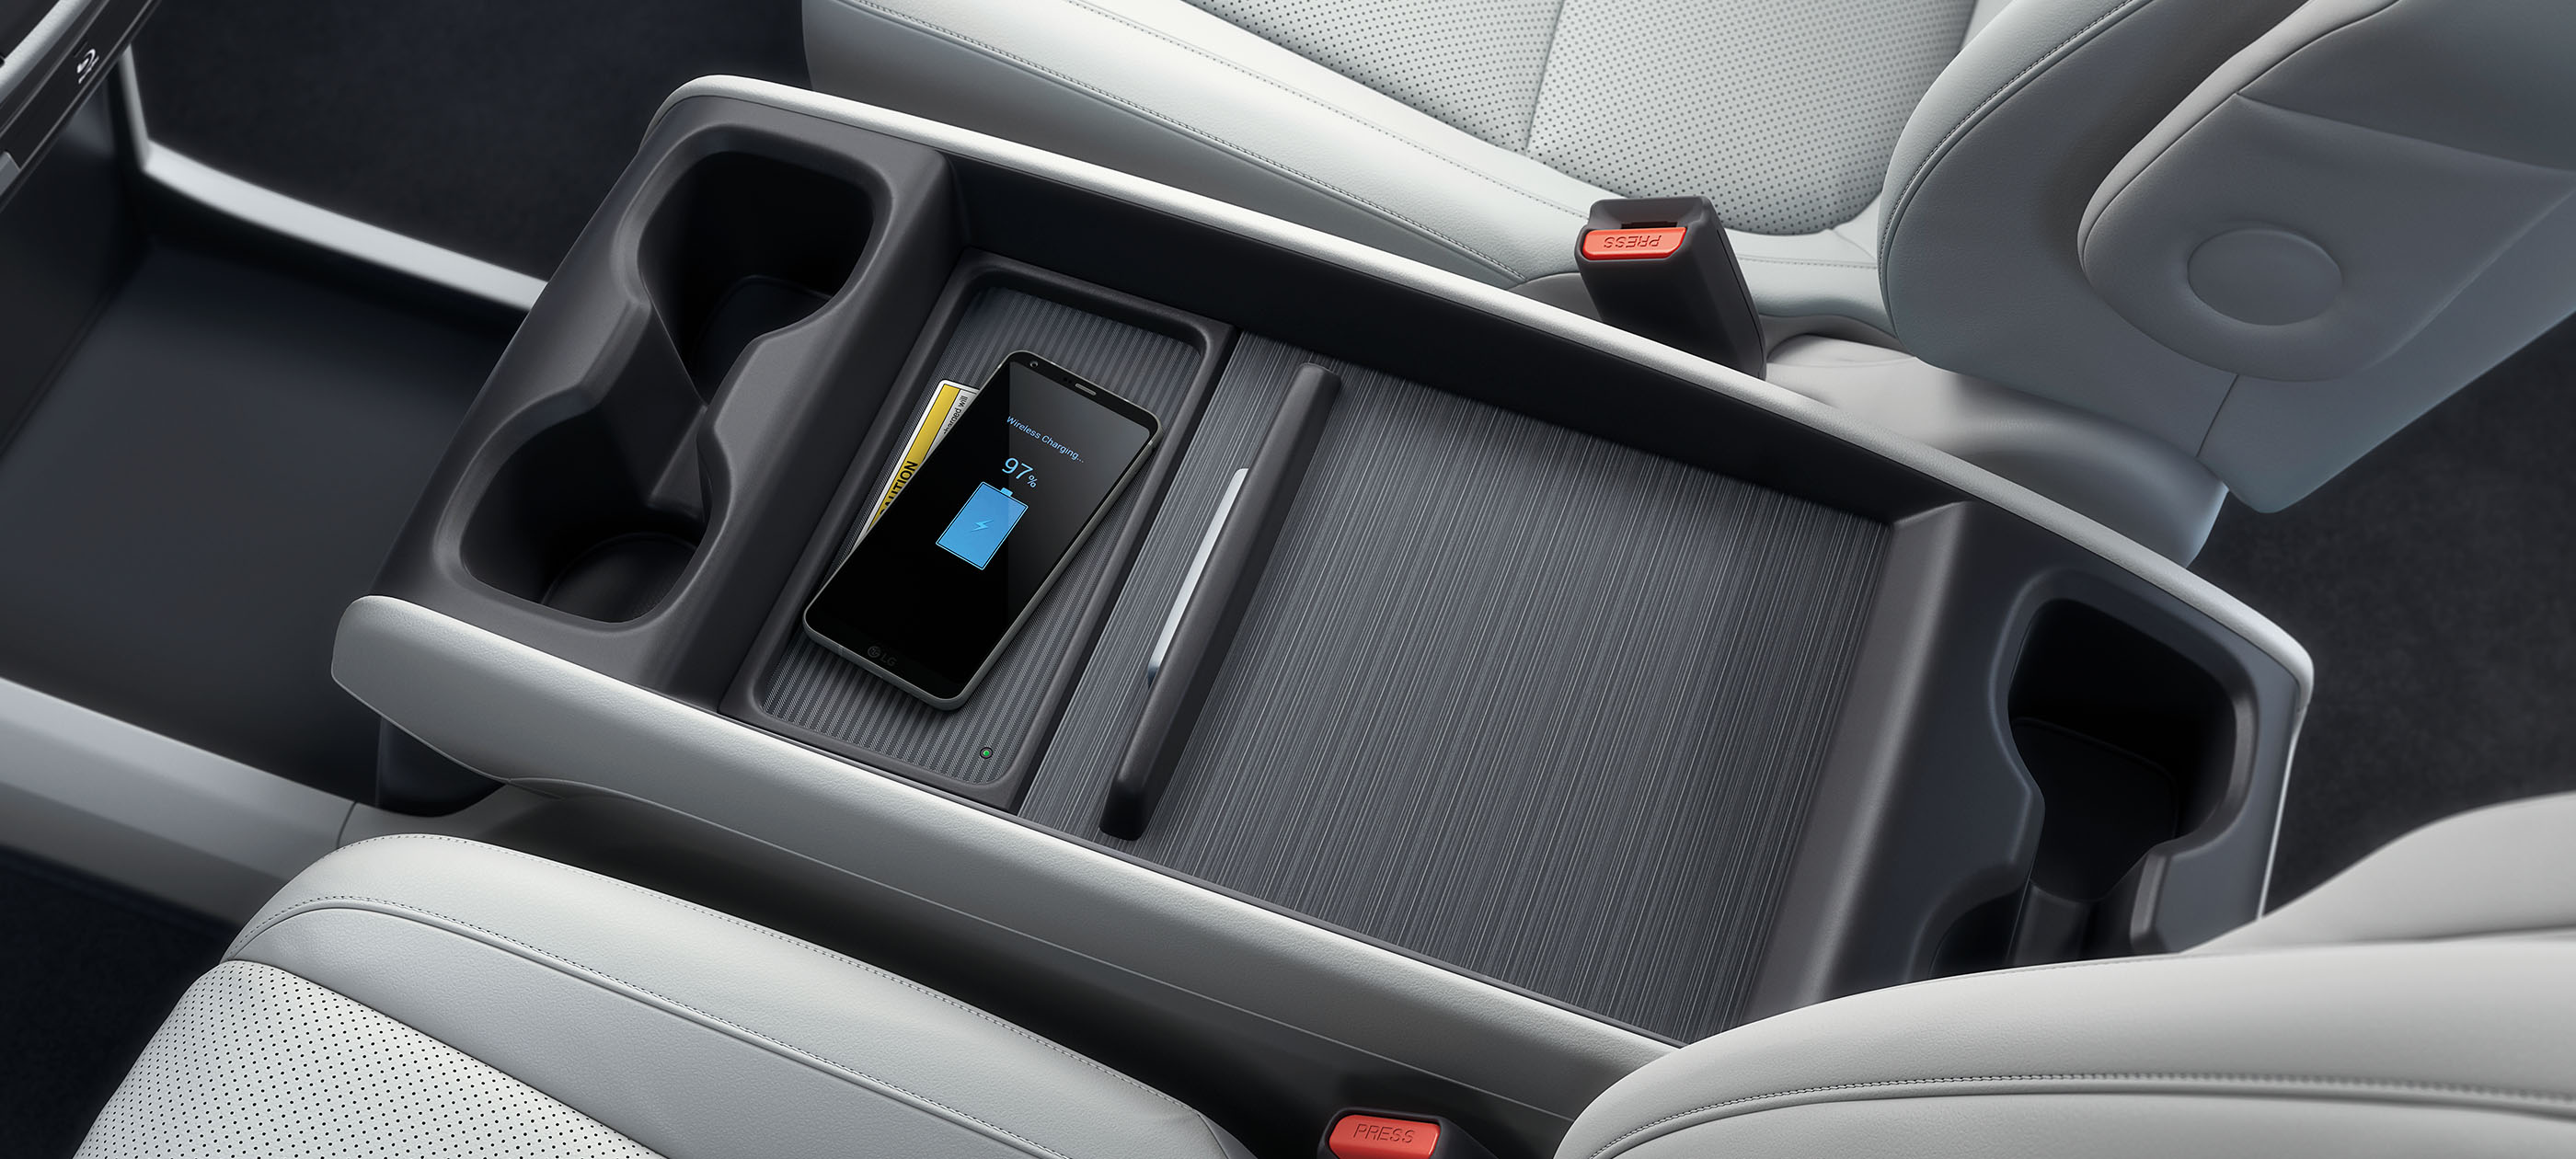 Interior overhead view of wireless phone charger and center console in the 2020 Honda Odyssey Elite with Gray Leather.